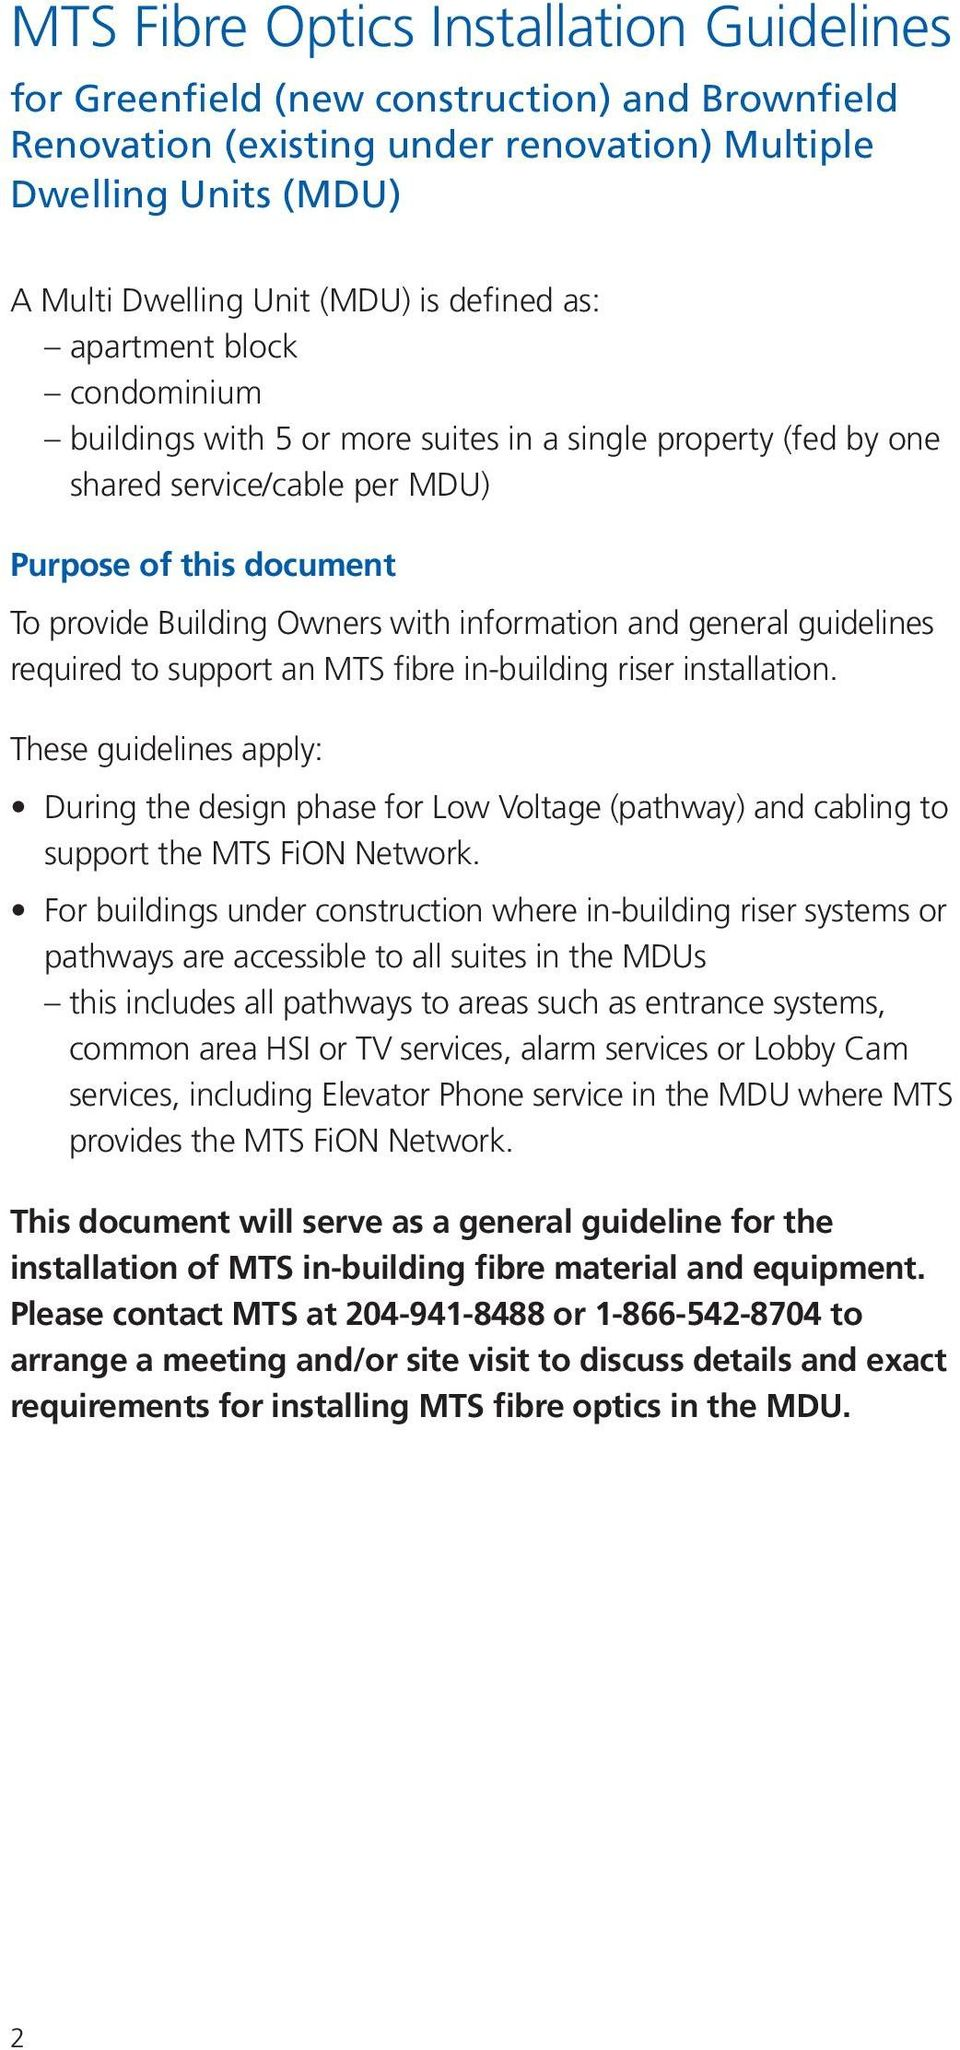 general guidelines required to support an MTS fibre in-building riser installation.